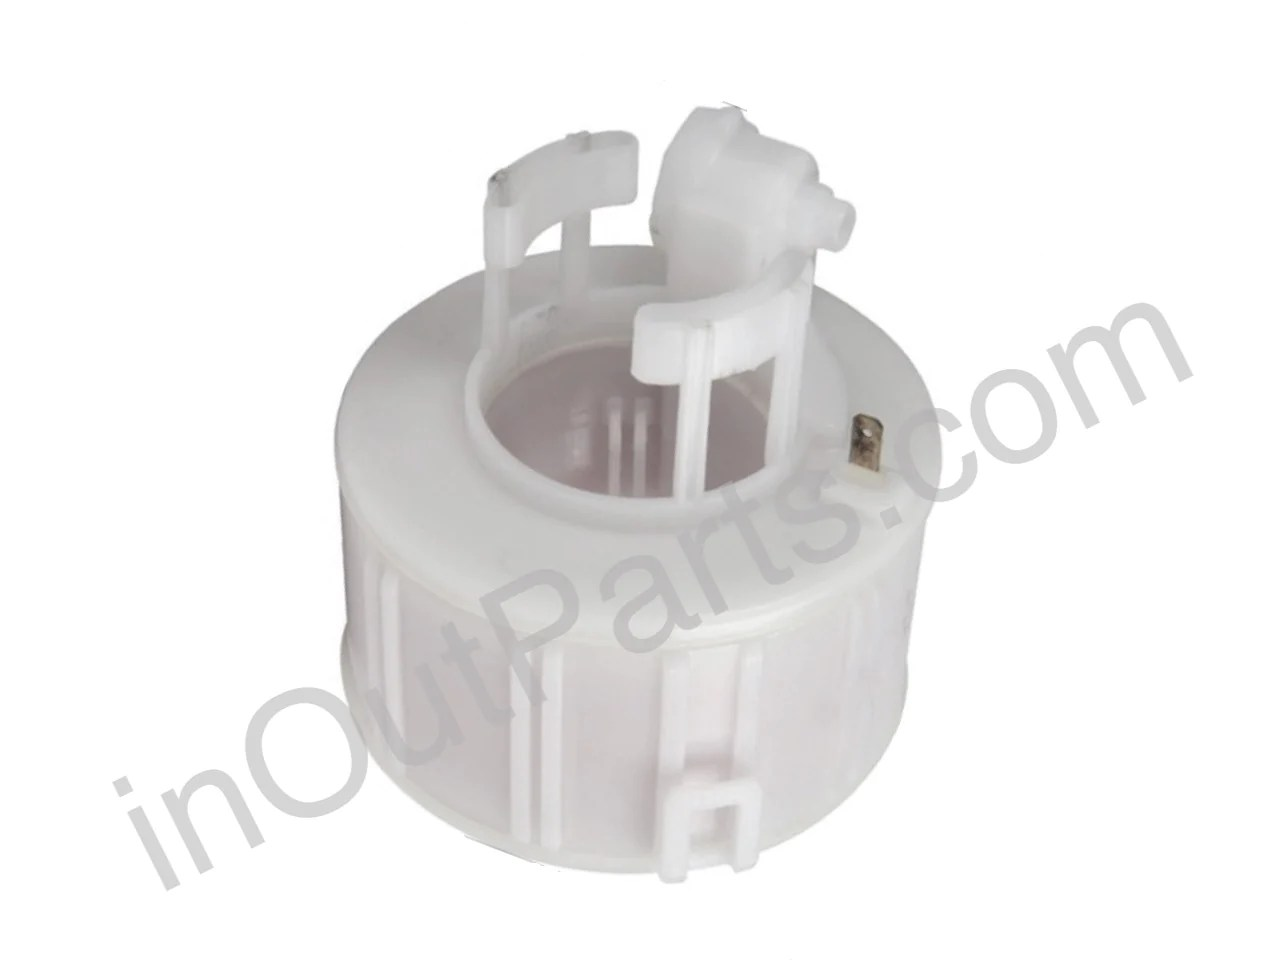 hight resolution of 2010 nissan altima fuel filter wiring library 2010 nissan frontier fuel filter location 2010 altima fuel filter location